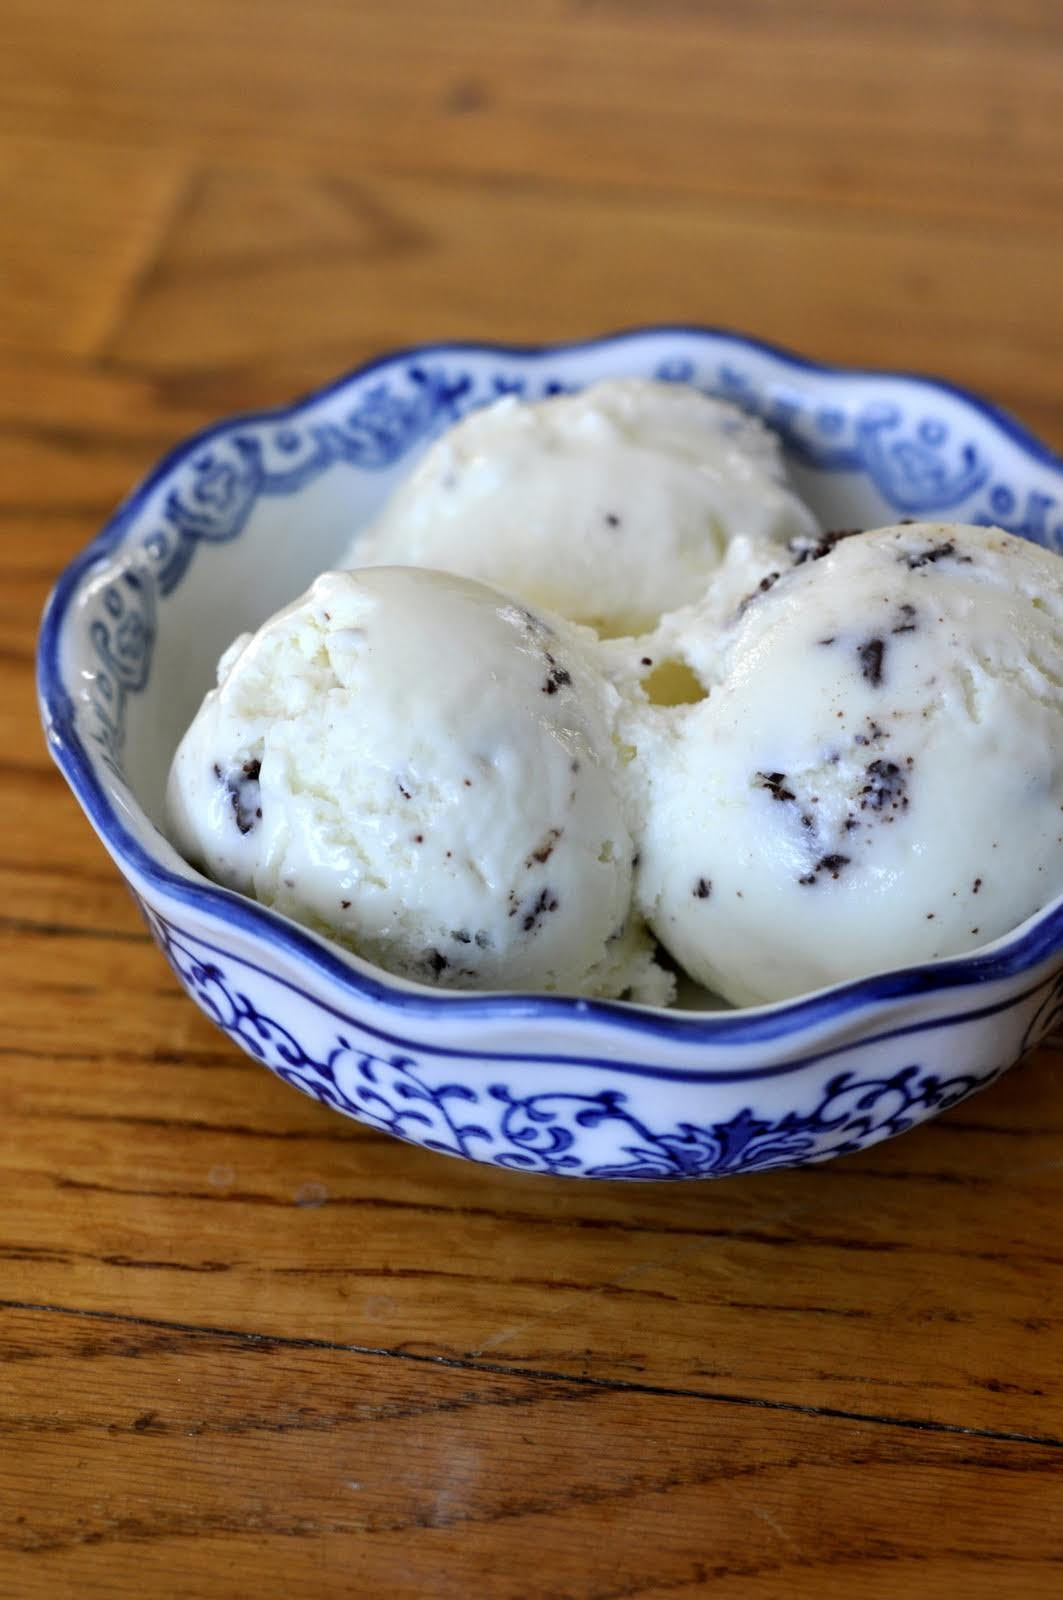 Stracciatella Gelato has a smooth and luscious texture dotted with flakes of chocolate. This Italian gelato is sure to become your new favorite frozen treat.